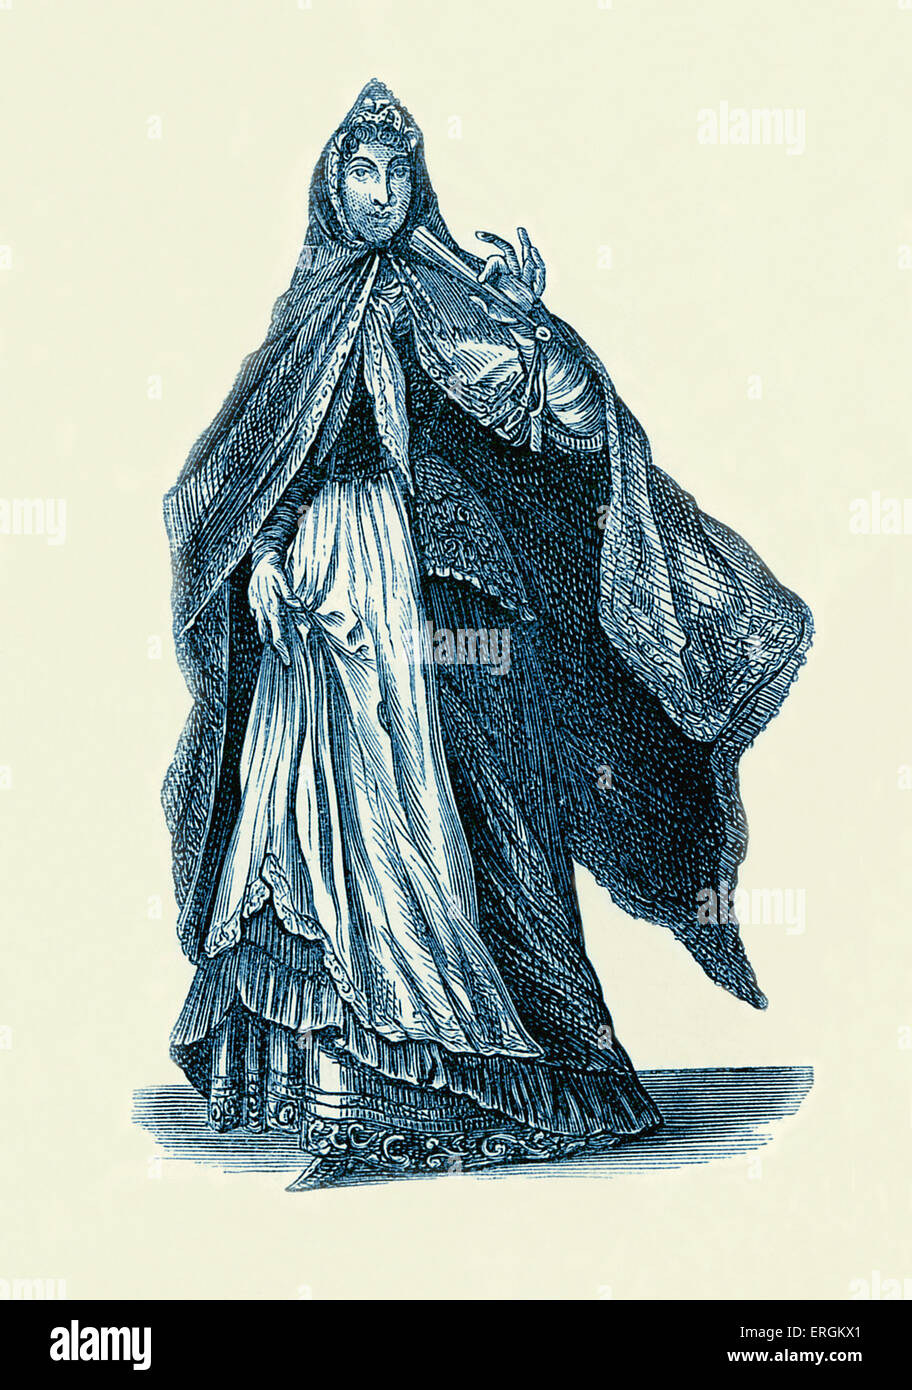 Lady of Strasburg / Strasbourg, 1703. Example of female fashion in early 18th century France. - Stock Image